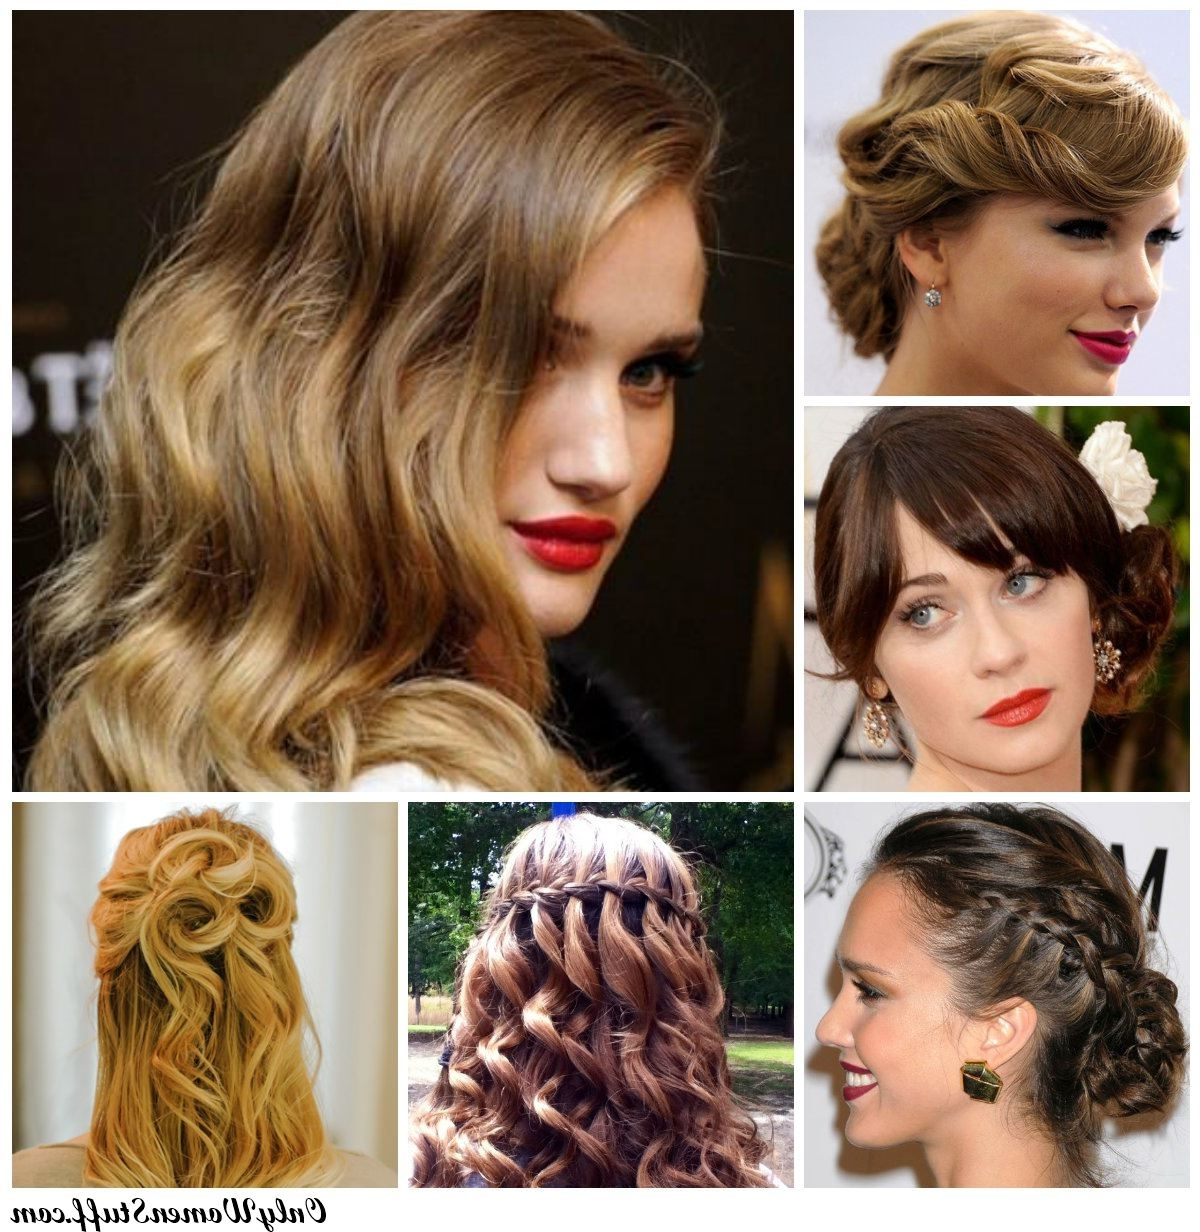 50+ Easy Prom Hairstyles & Updos Ideas (stepstep) With Regard To Homecoming Updo Hairstyles For Short Hair (View 14 of 15)